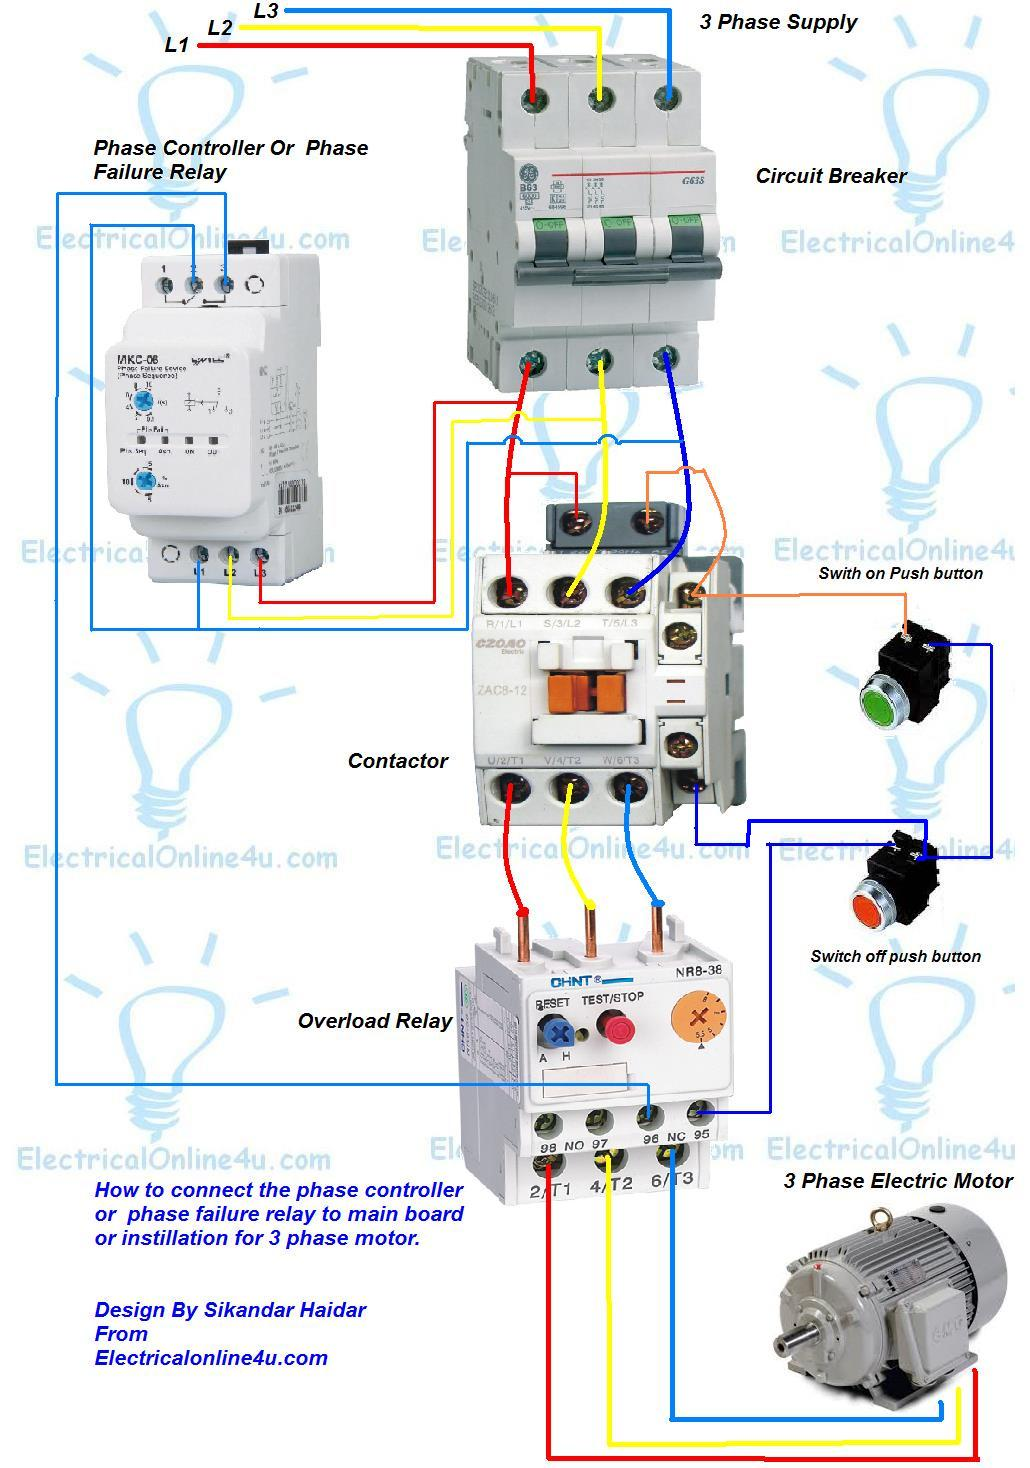 Phase%2Bfailure%2Brelay%2B %2Bphase%2Bcontroller%2Binstilaion%2Bin%2B3%2Bphase%2BMain%2Bboard%2Bor%2Bfor%2B3%2Bphase%2Bmotor electrical control wiring diagram electrical service diagrams 3 phase electrical panel diagram at gsmx.co